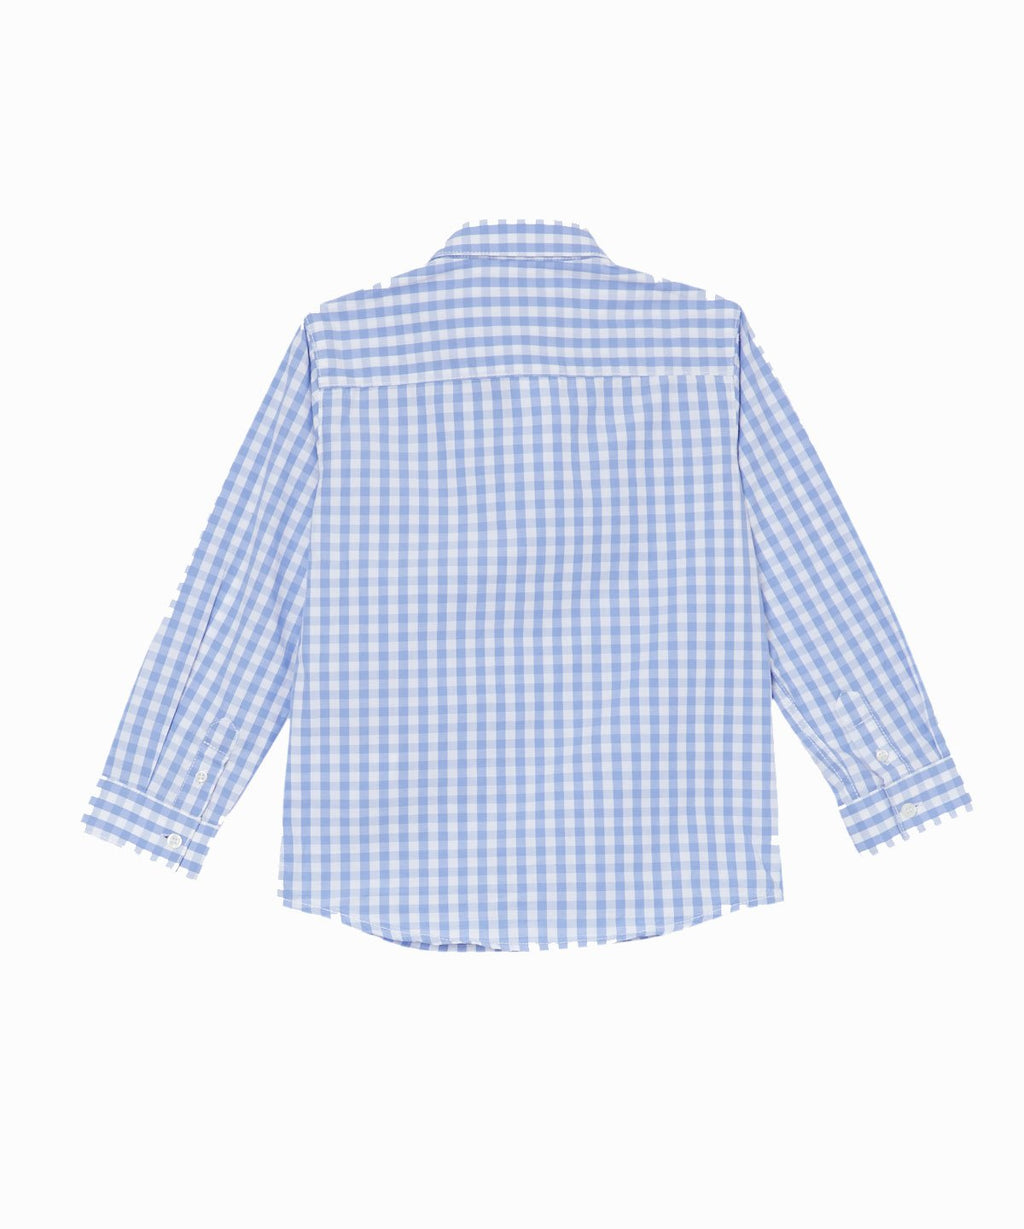 Light Blue & White Check Long Sleeve Button Down Shirt